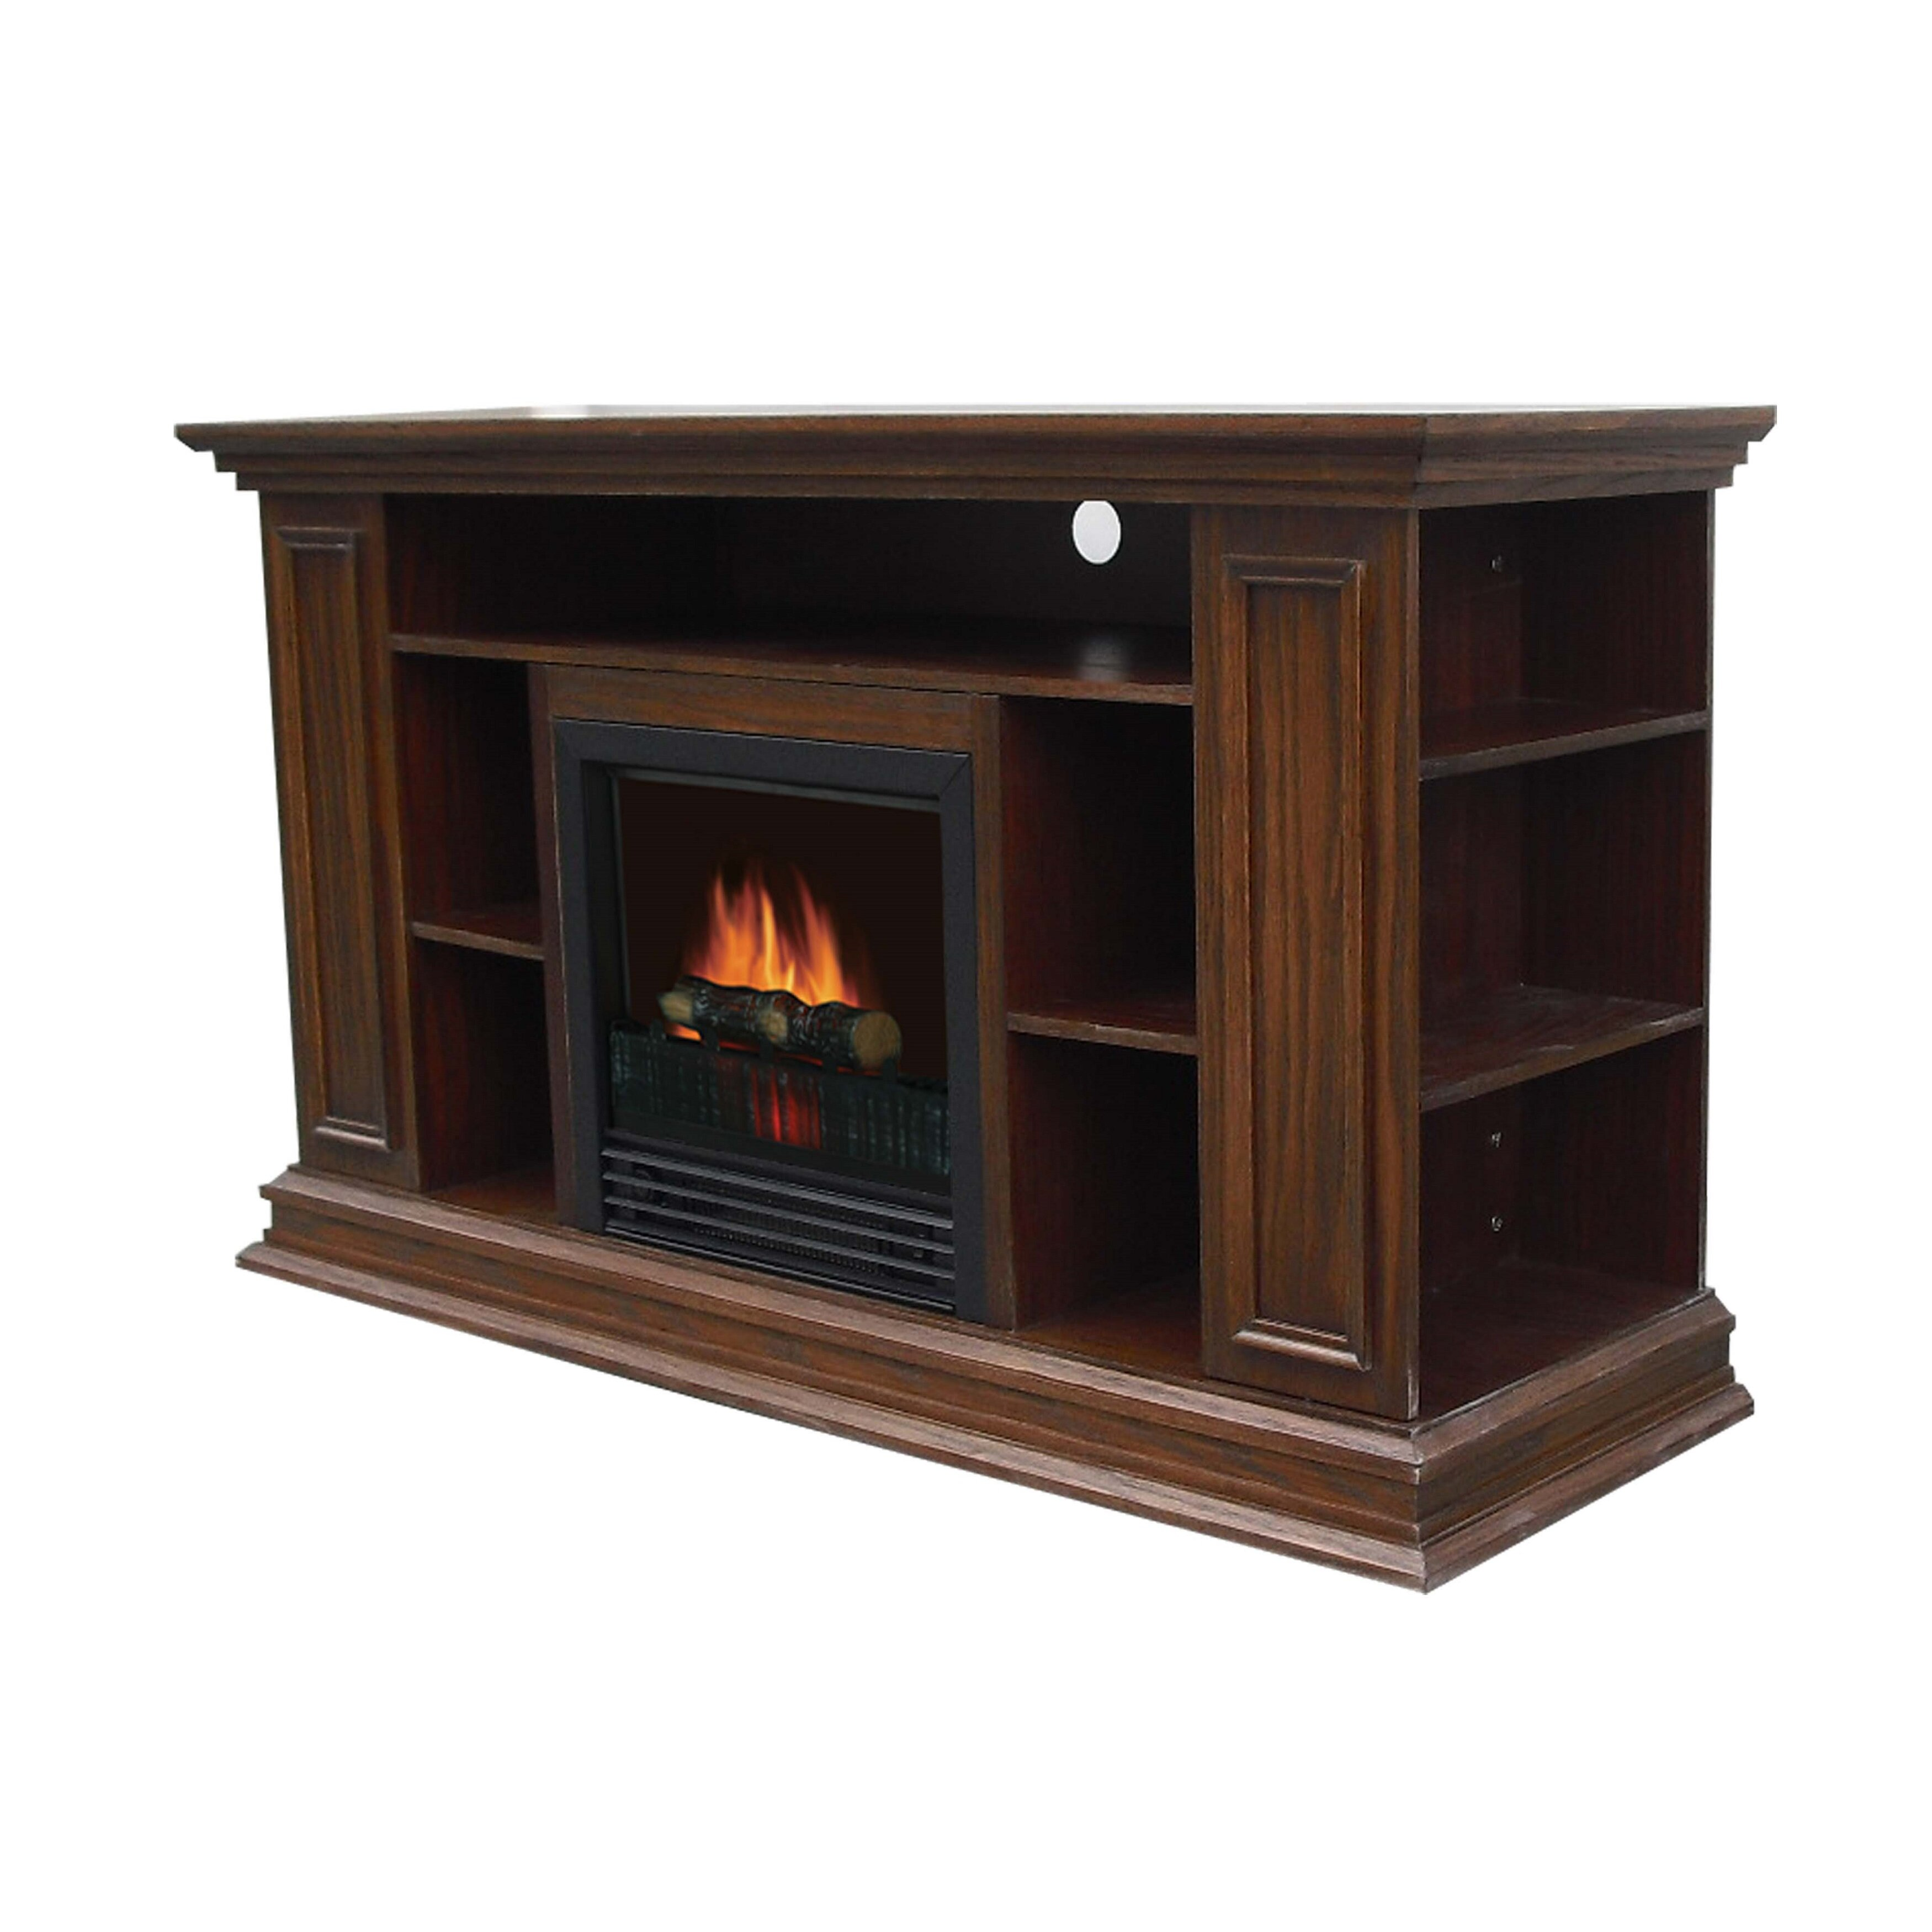 Loon Peak Maidstone 50 TV Stand with Electric Fireplace